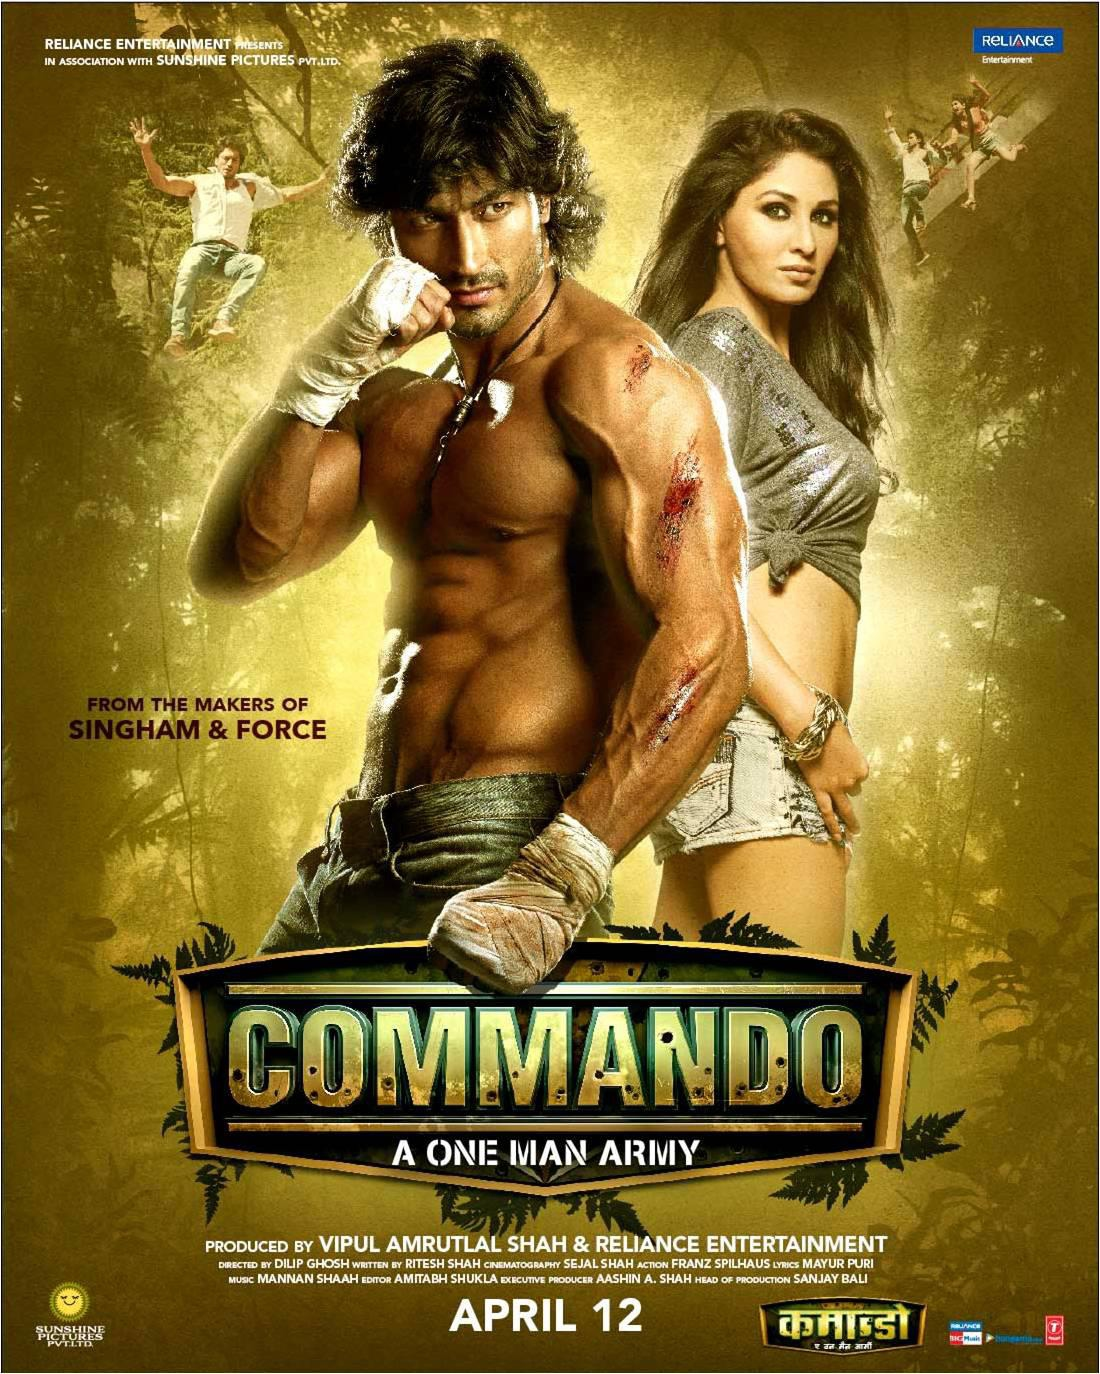 Commando - Movie Poster #1 (Original)